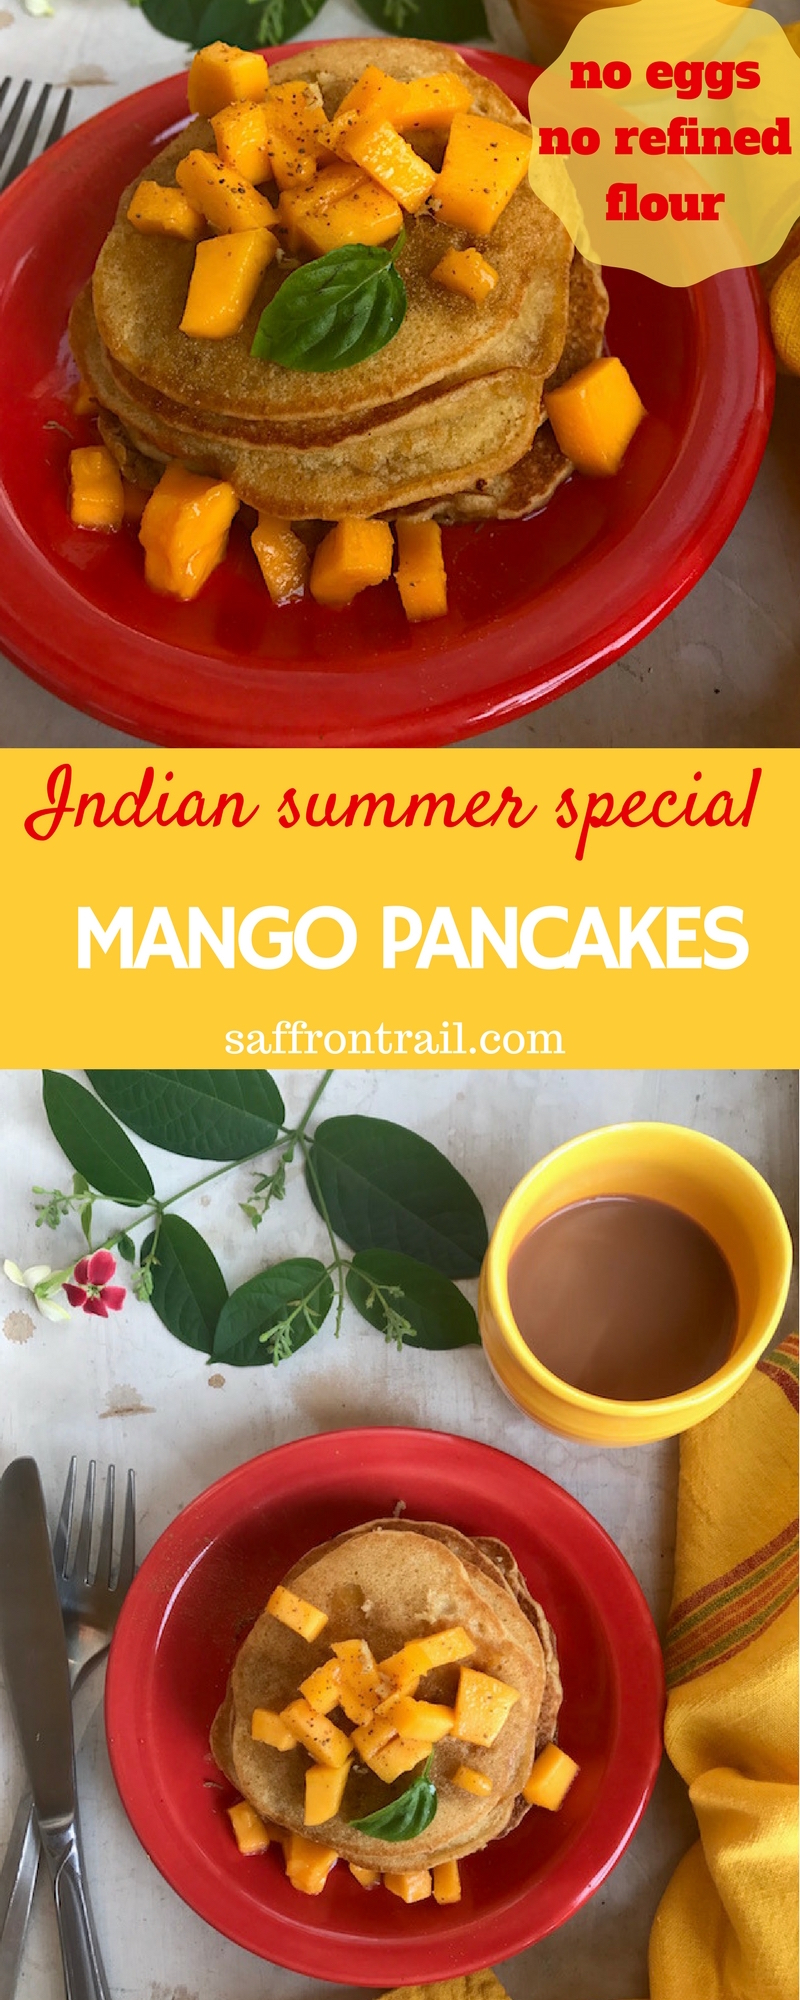 Whole wheat flour, juicy ripe mangoes, with a touch of spice from ginger, these mango pancakes are the best summer breakfast